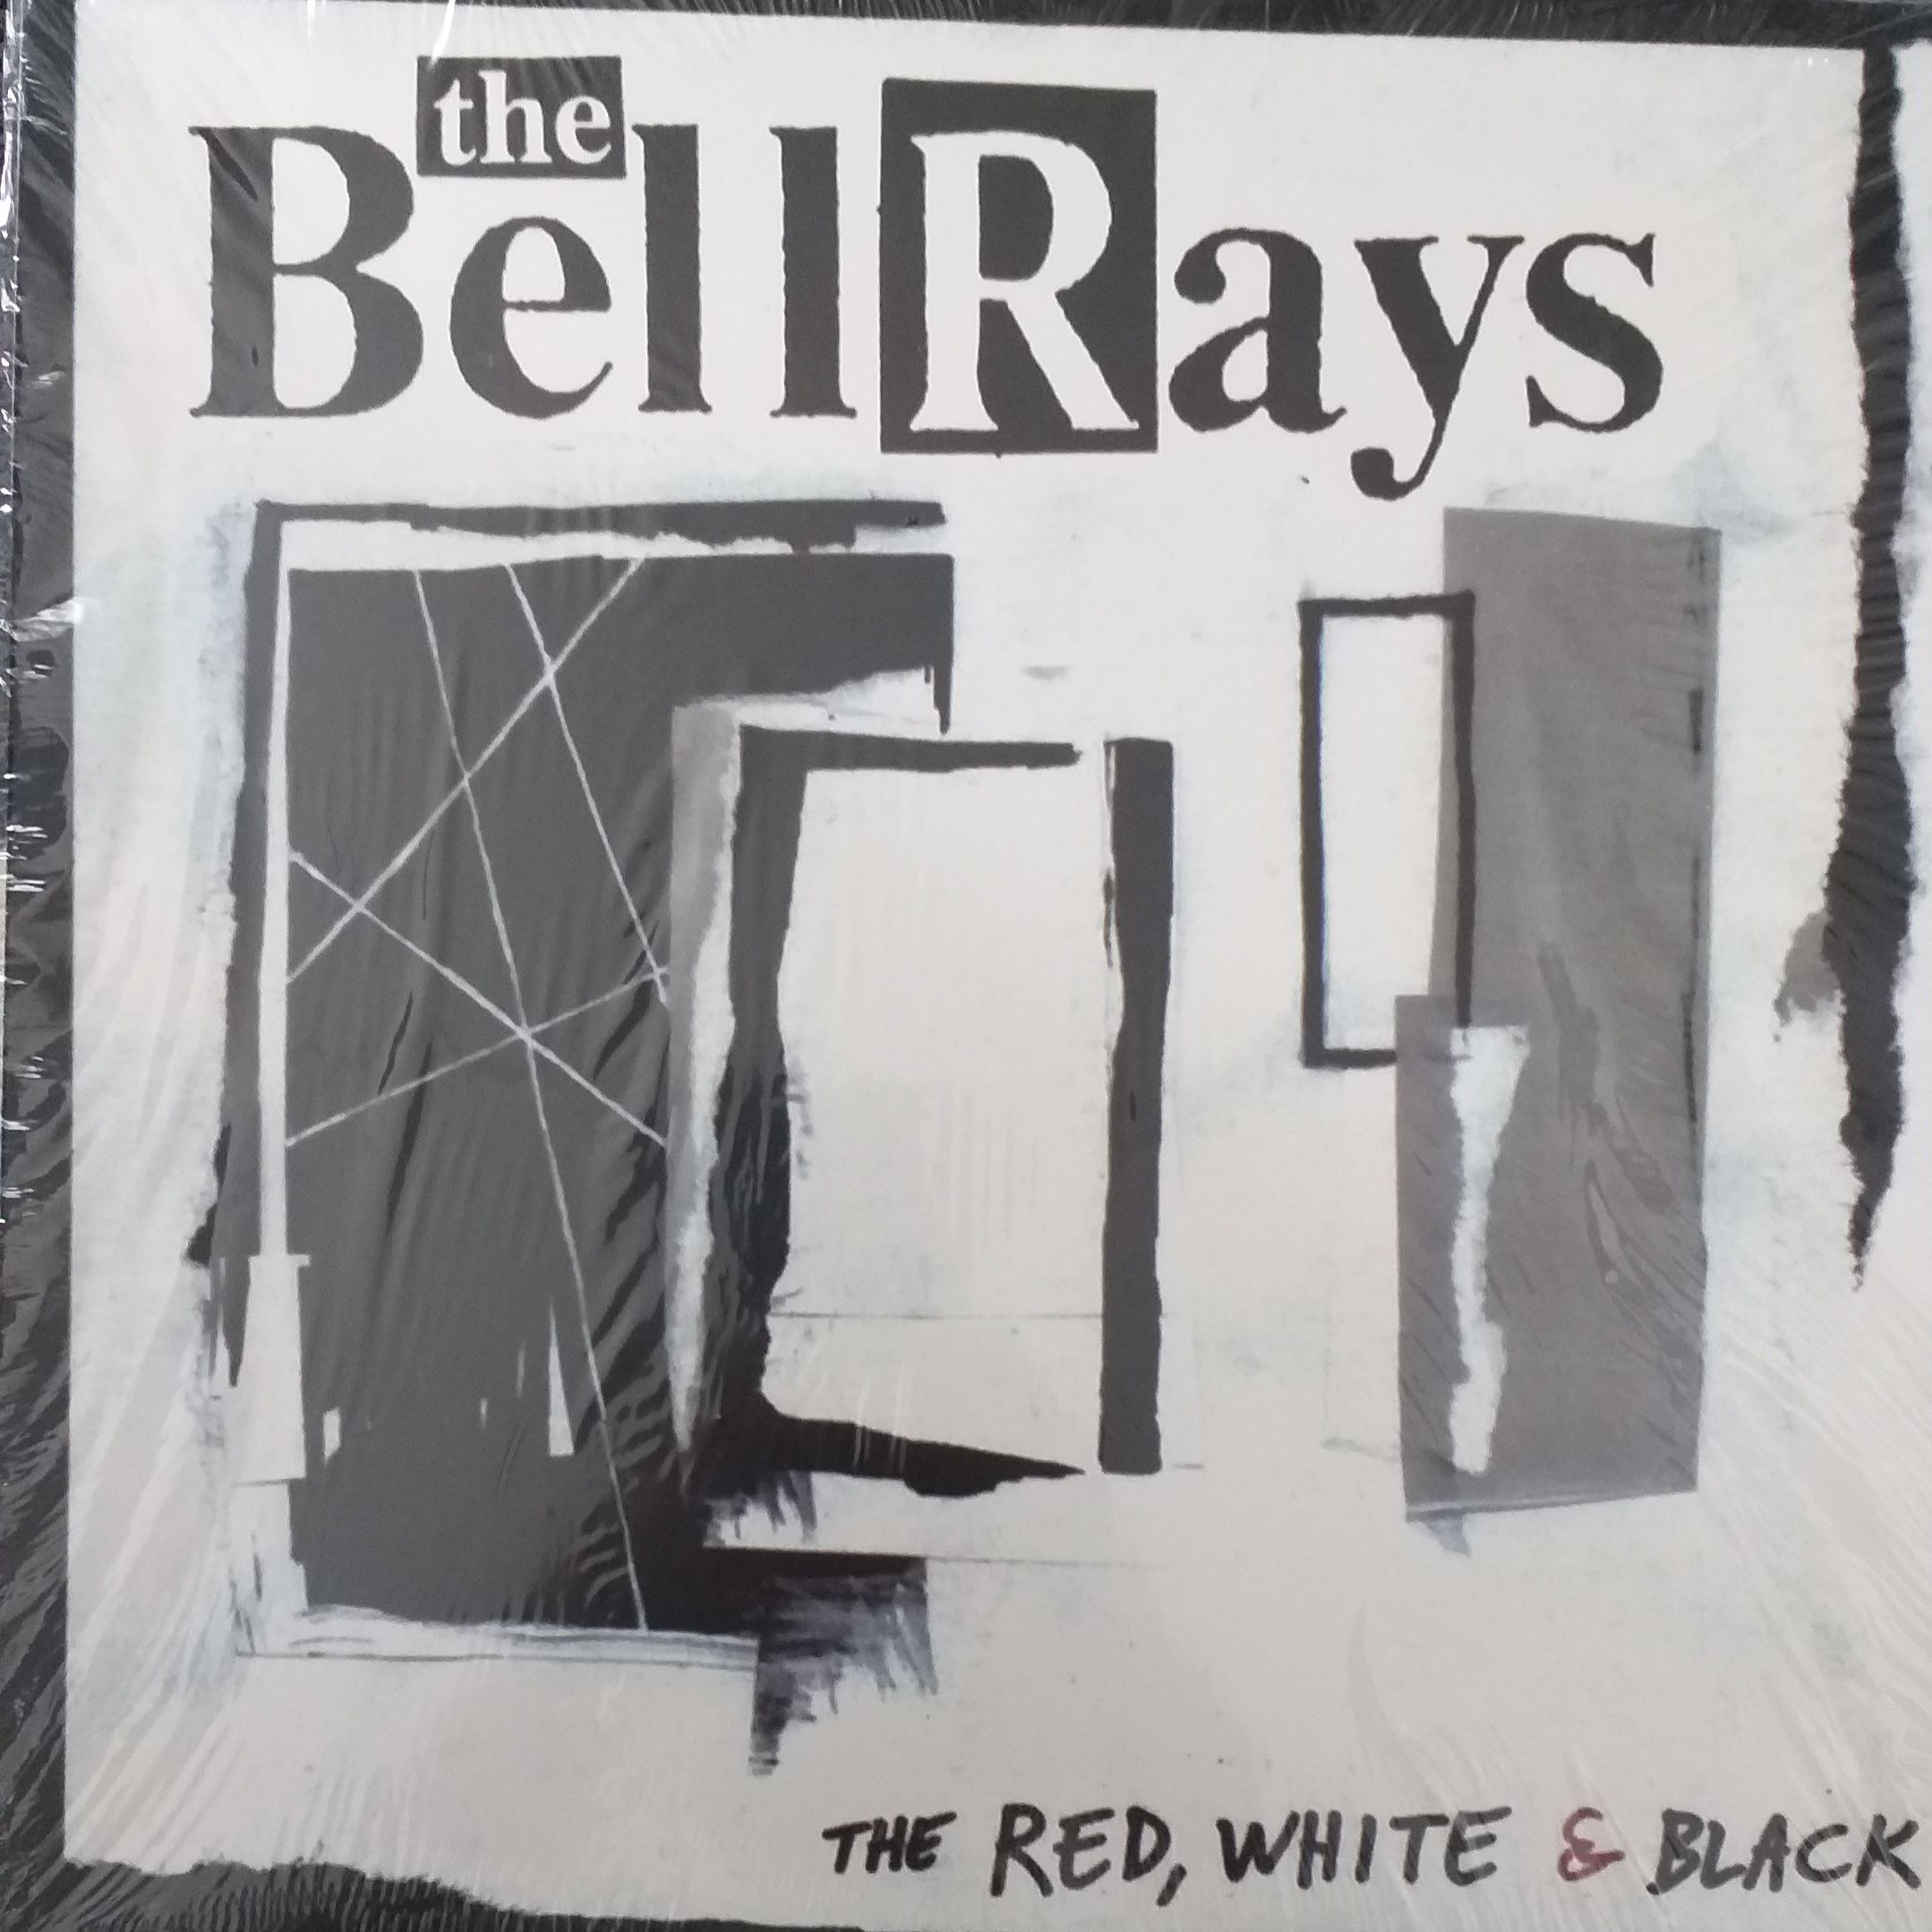 The Bellrays The red, white & black LP undefined